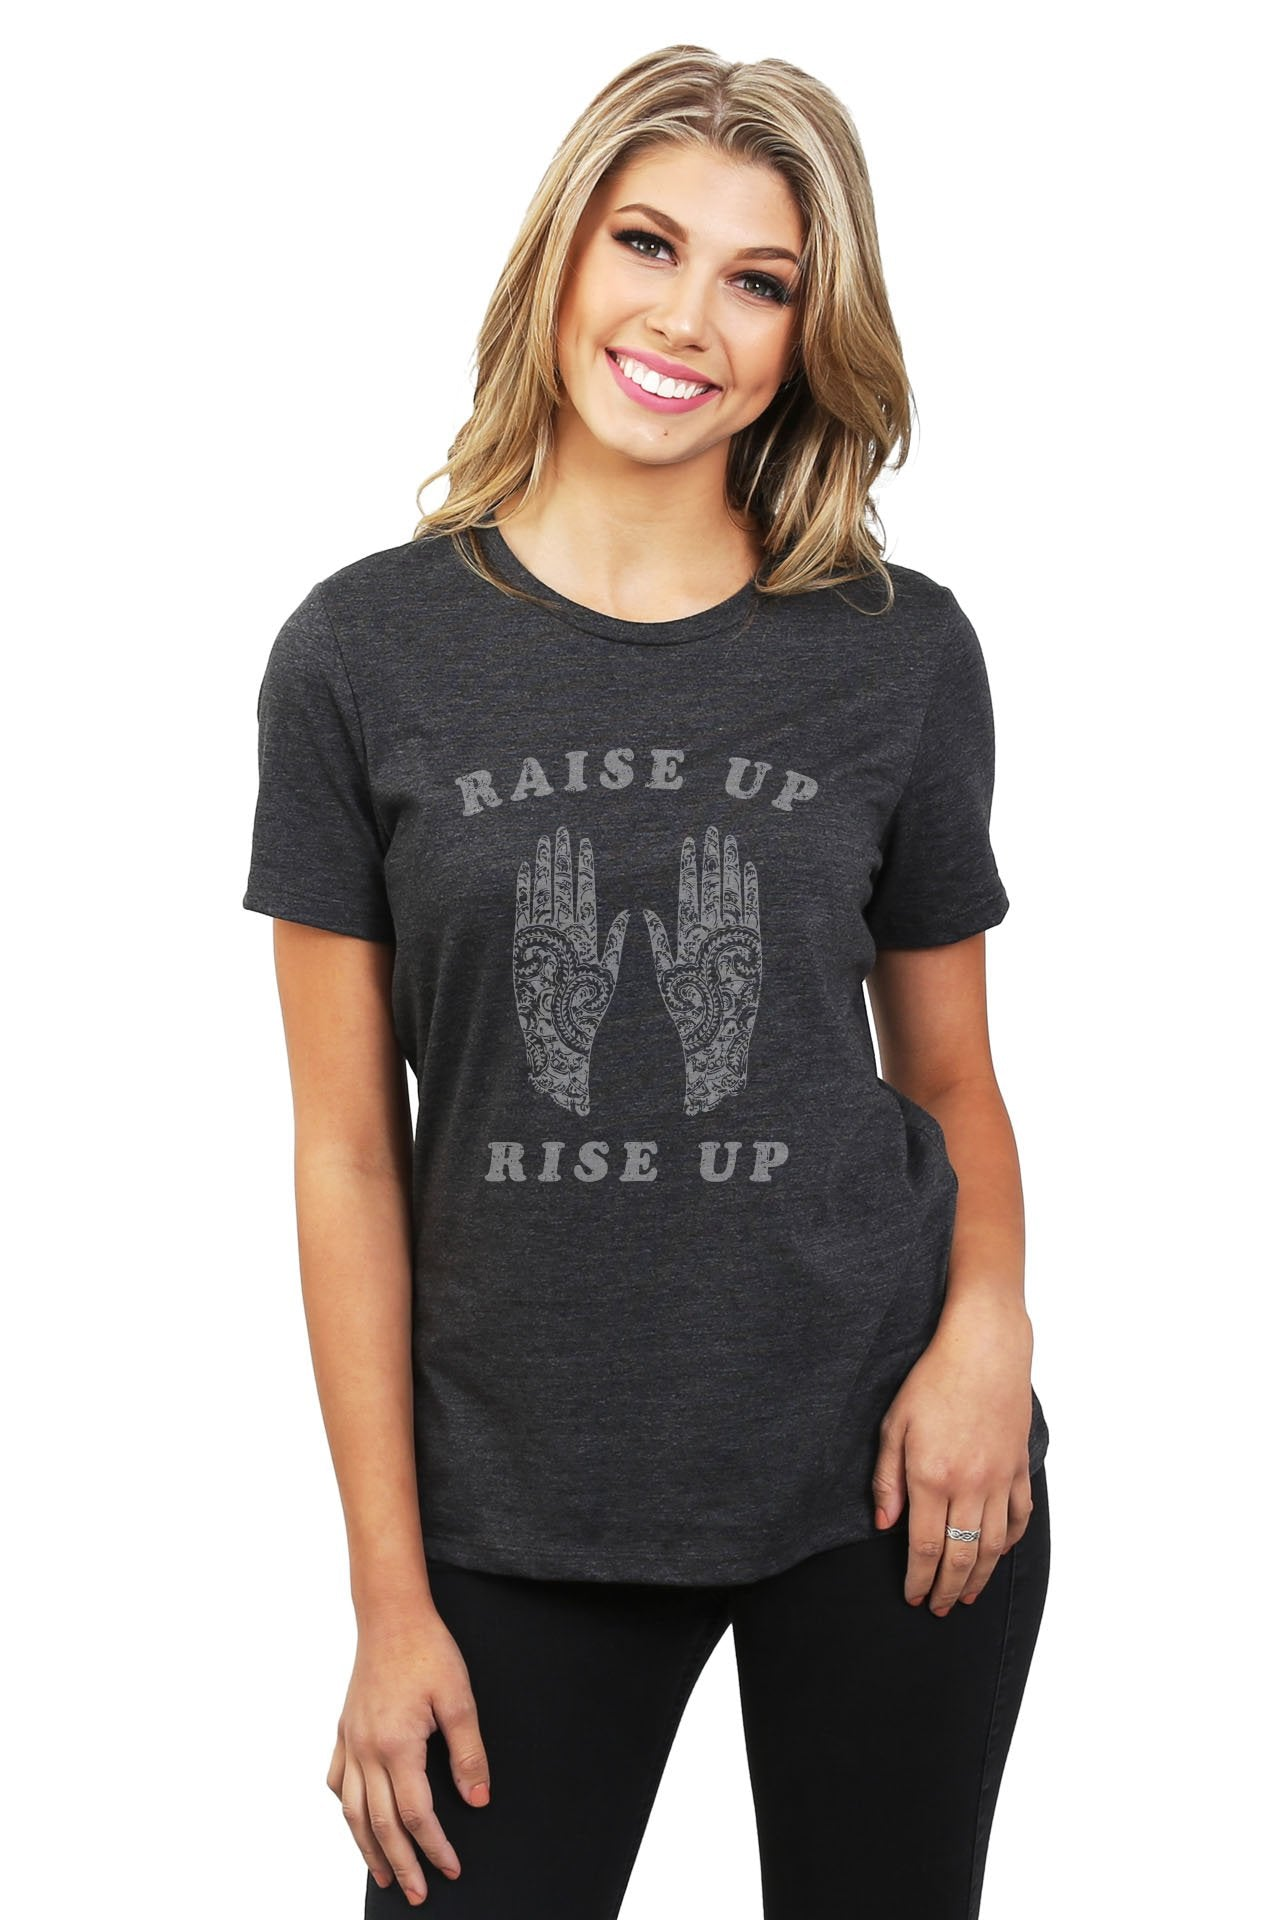 Raise Up Rise Up